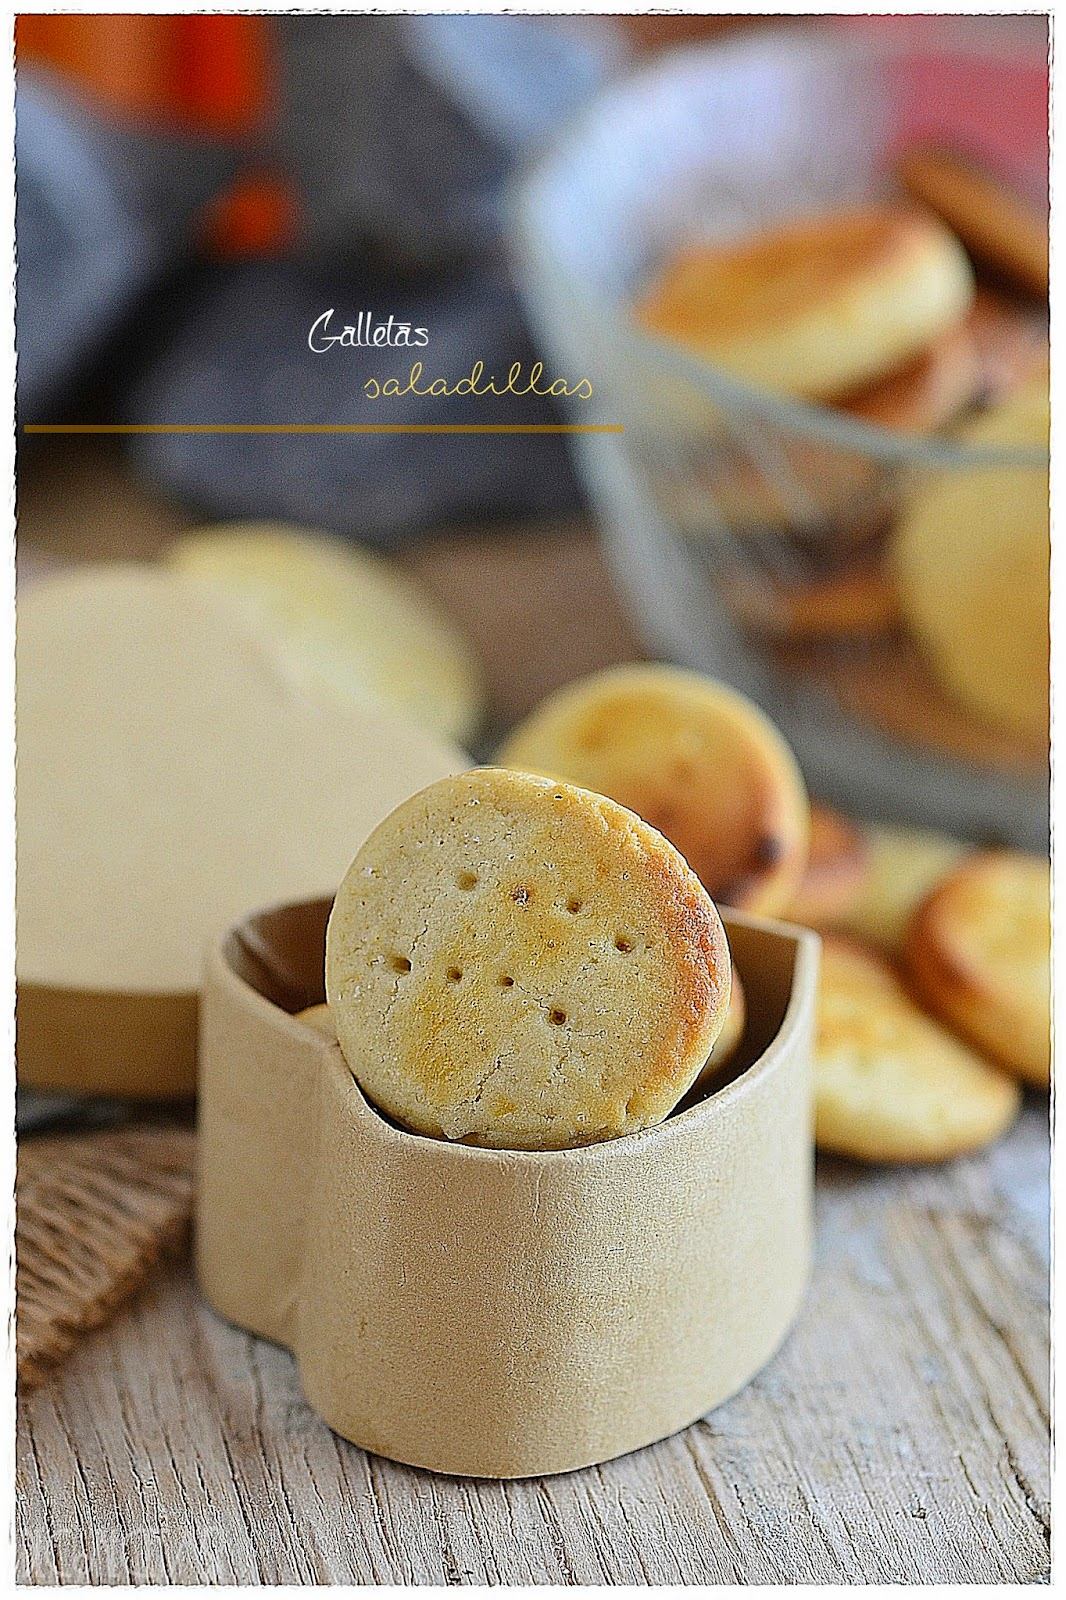 Galletas saladillas